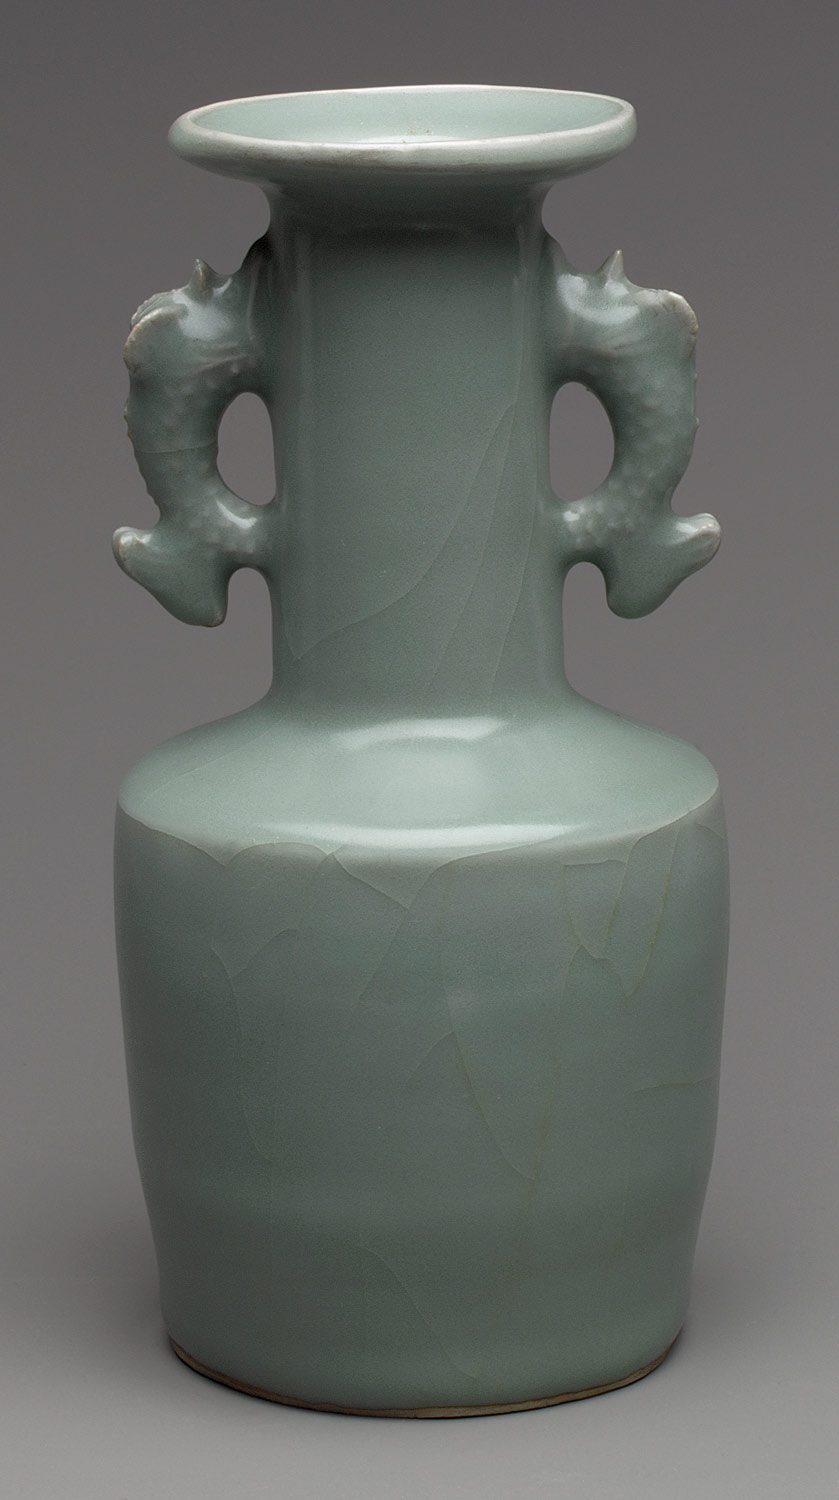 Vase with Dragonfish Handles